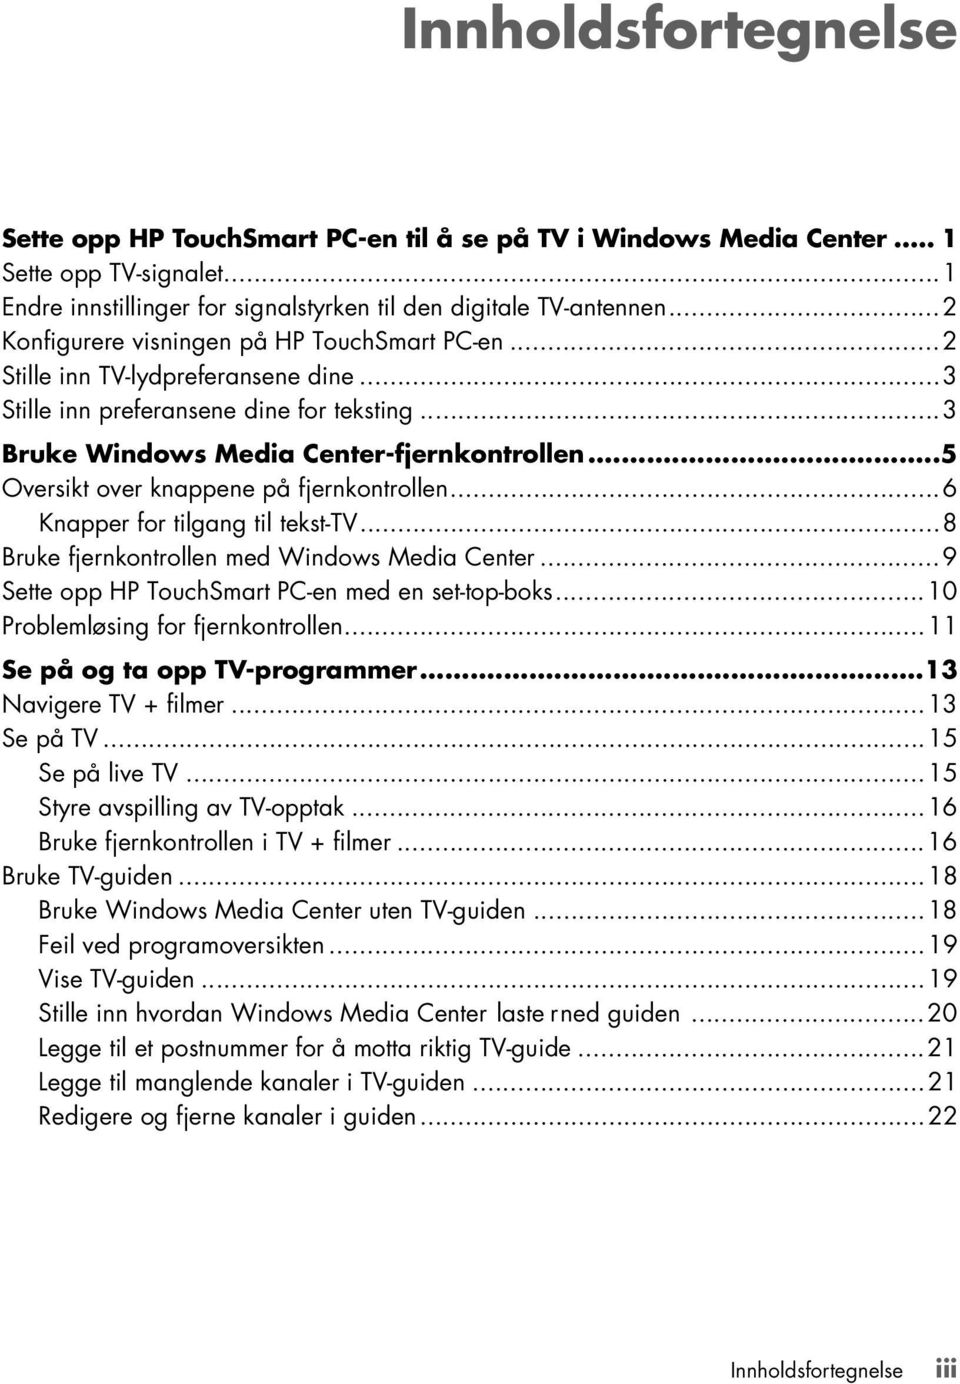 ..5 Oversikt over knappene på fjernkontrollen...6 Knapper for tilgang til tekst-tv...8 Bruke fjernkontrollen med Windows Media Center...9 Sette opp HP TouchSmart PC-en med en set-top-boks.